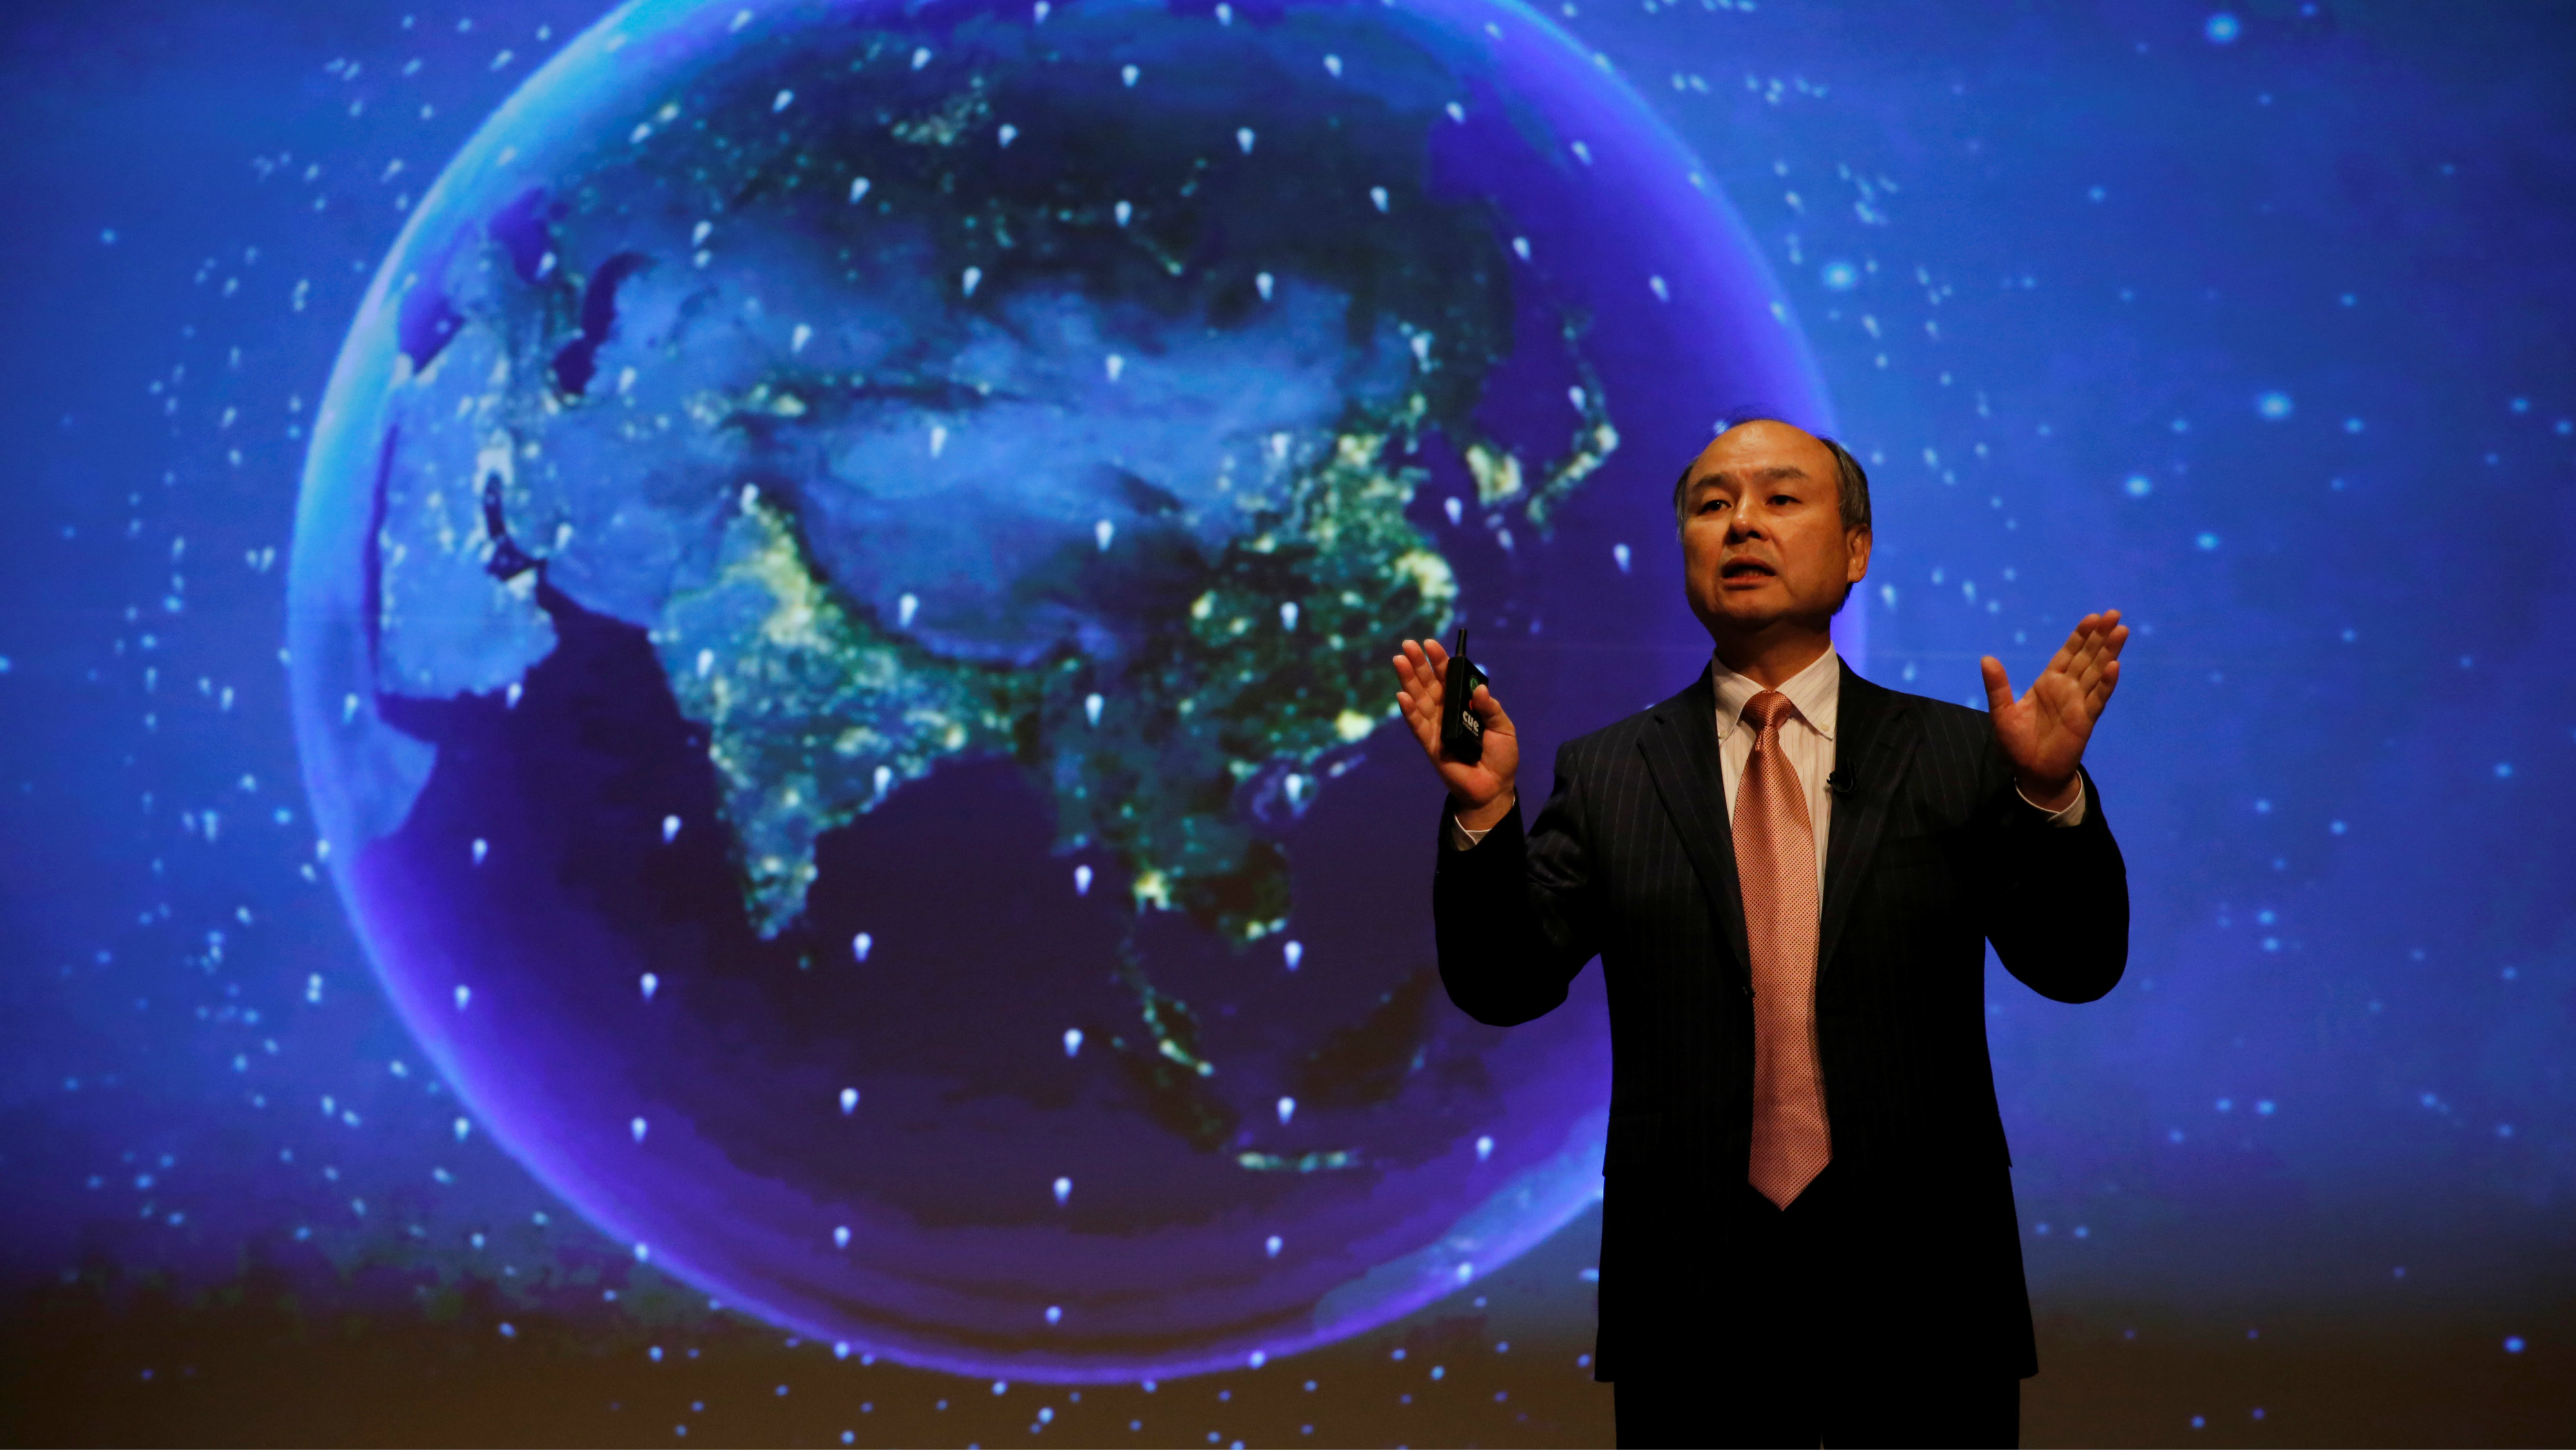 SoftBank Group Corp Chairman and CEO Masayoshi Son attends a news conference in Tokyo, Japan, February 8, 2017.